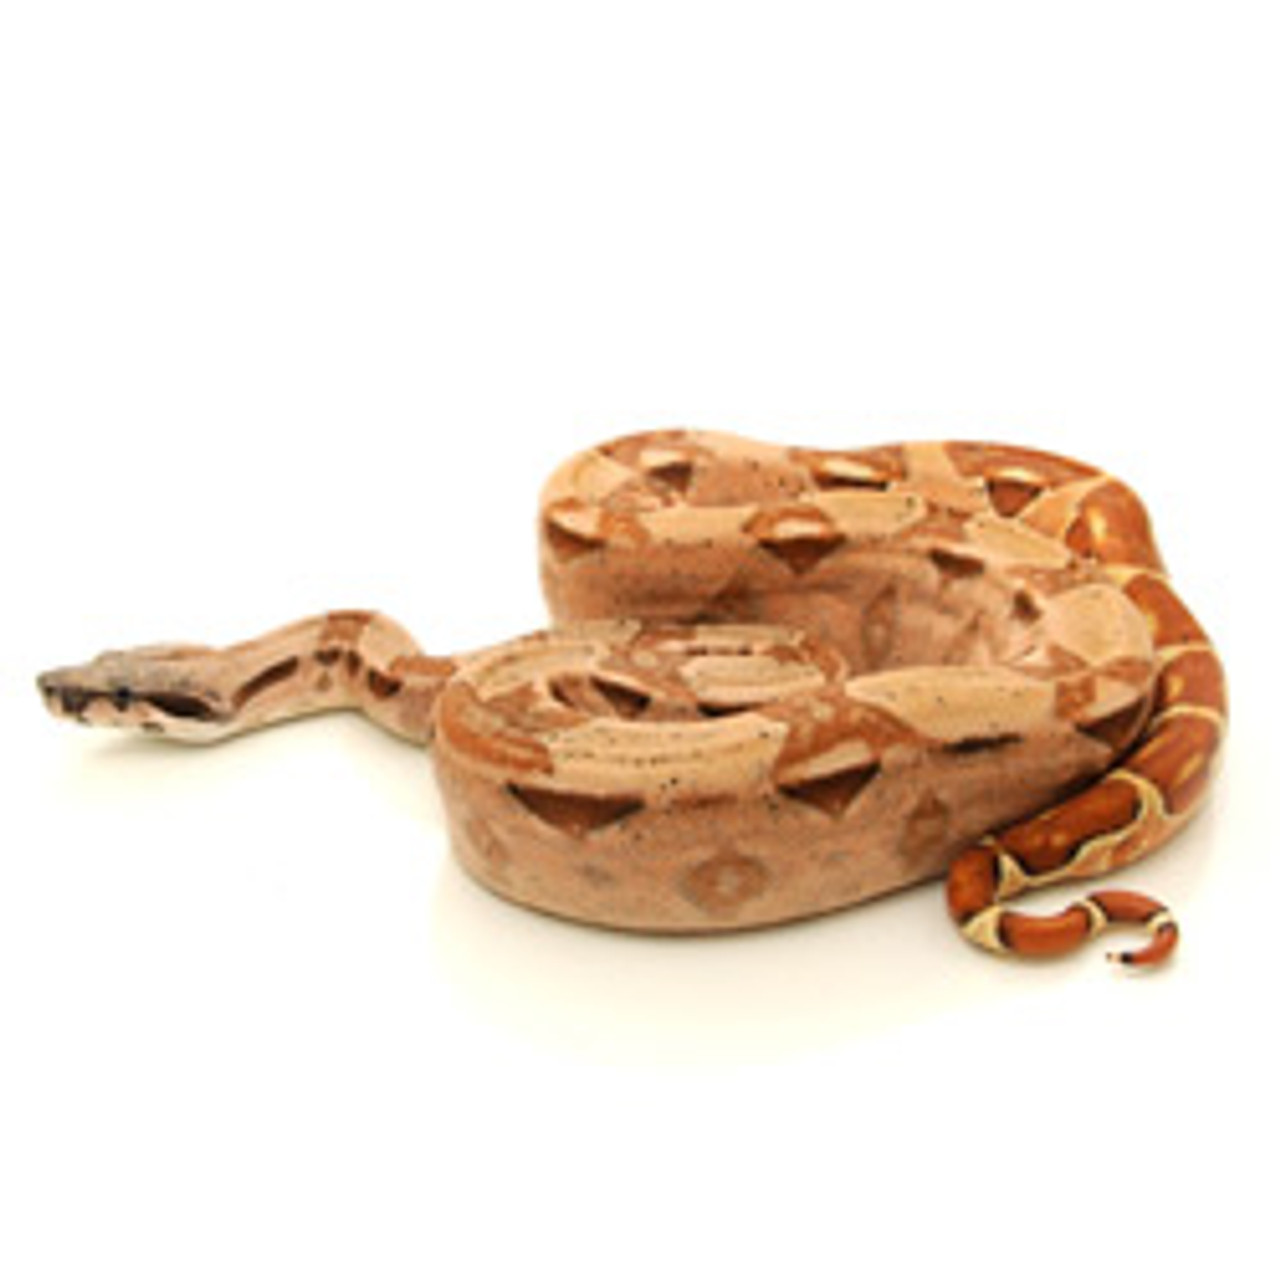 Hypo Boa For Sale From Reptmart Com